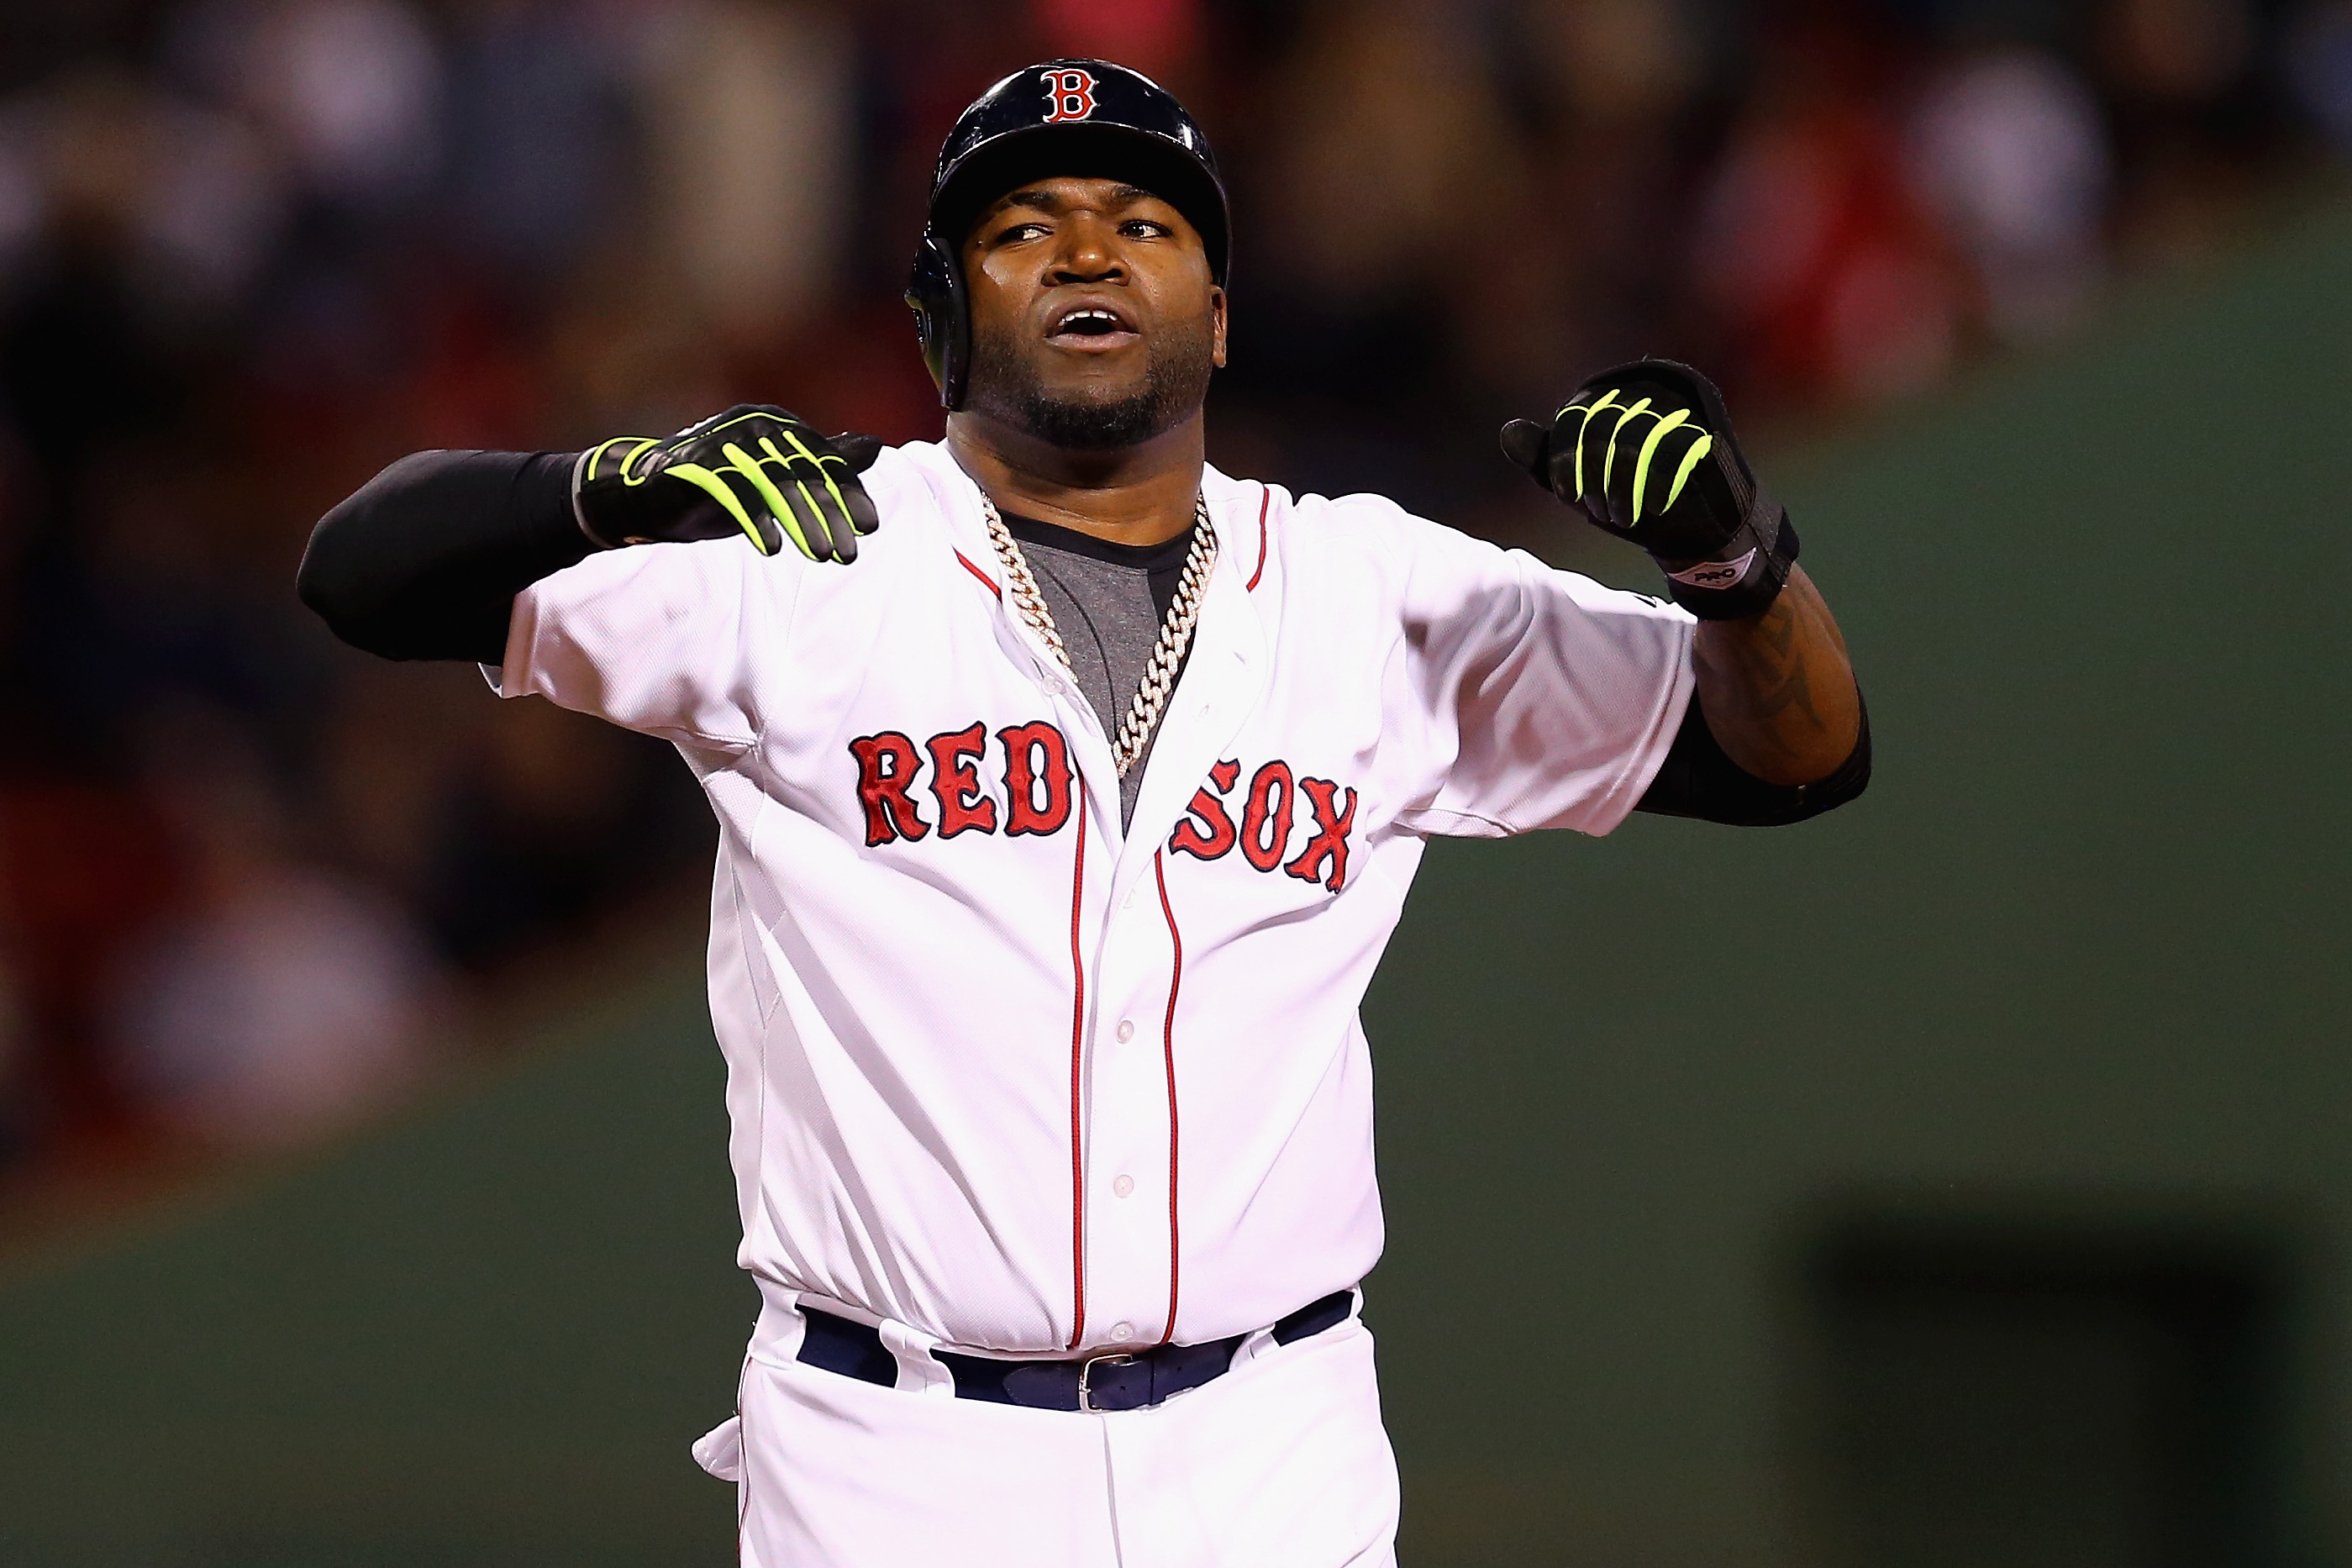 BOSTON, MA - MAY 20:  David Ortiz #34 of the Boston Red Sox reacts after a scoreless seventh inning against the Texas Rangers at Fenway Park on May 20, 2015 in Boston, Massachusetts. The Rangers defeat the Red Sox 2-1.  (Photo by Maddie Meyer/Getty Images)